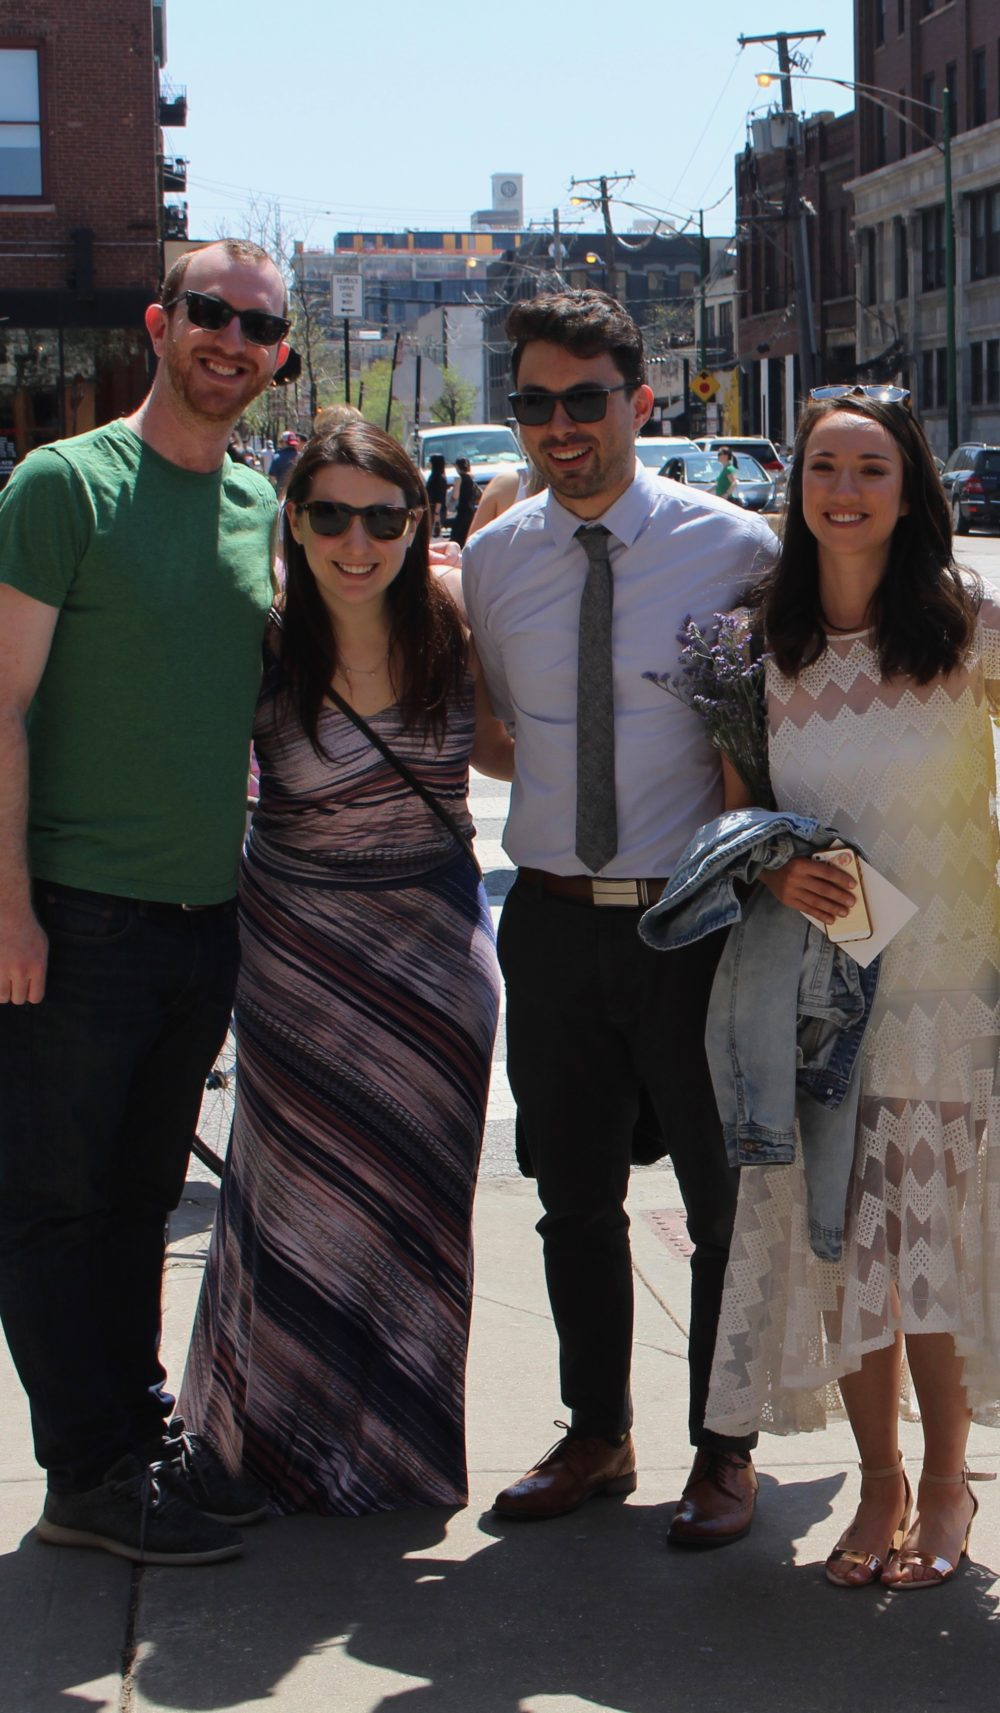 Kevin and Marina with their partners, Sam and Annie